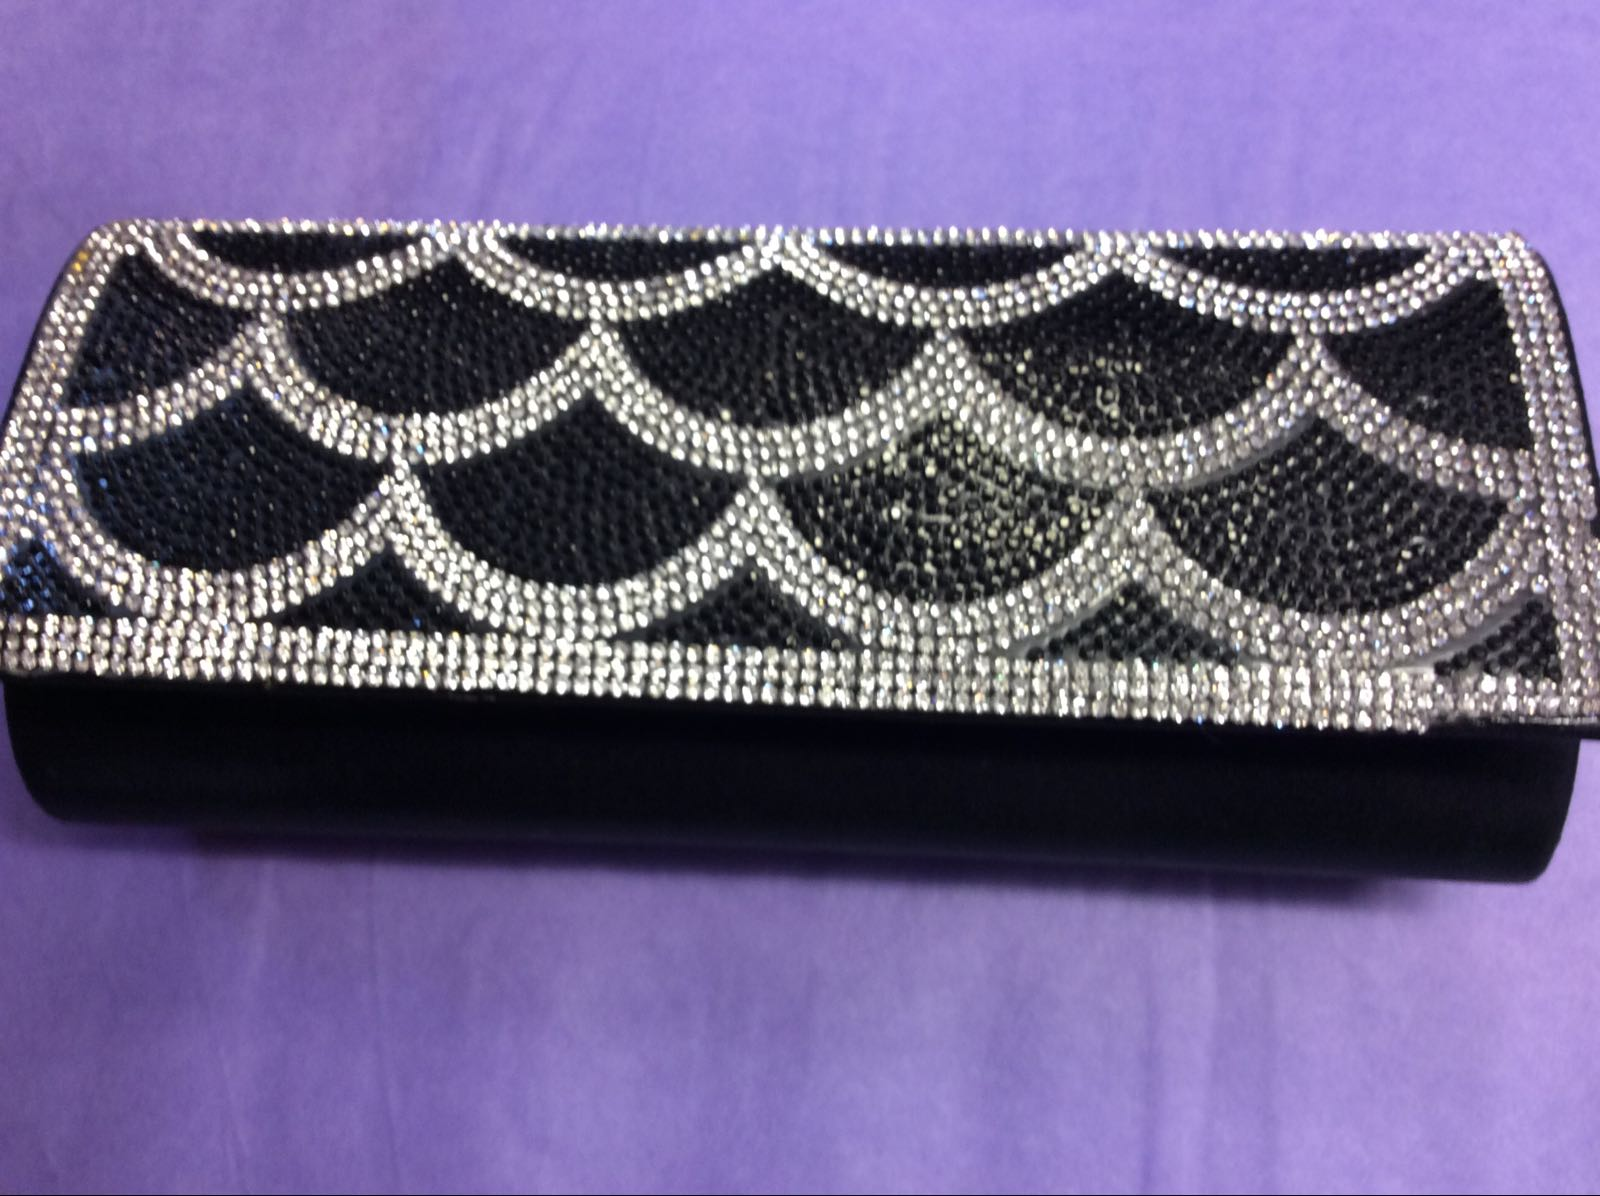 Black & Silver Scallop Clutch Bag